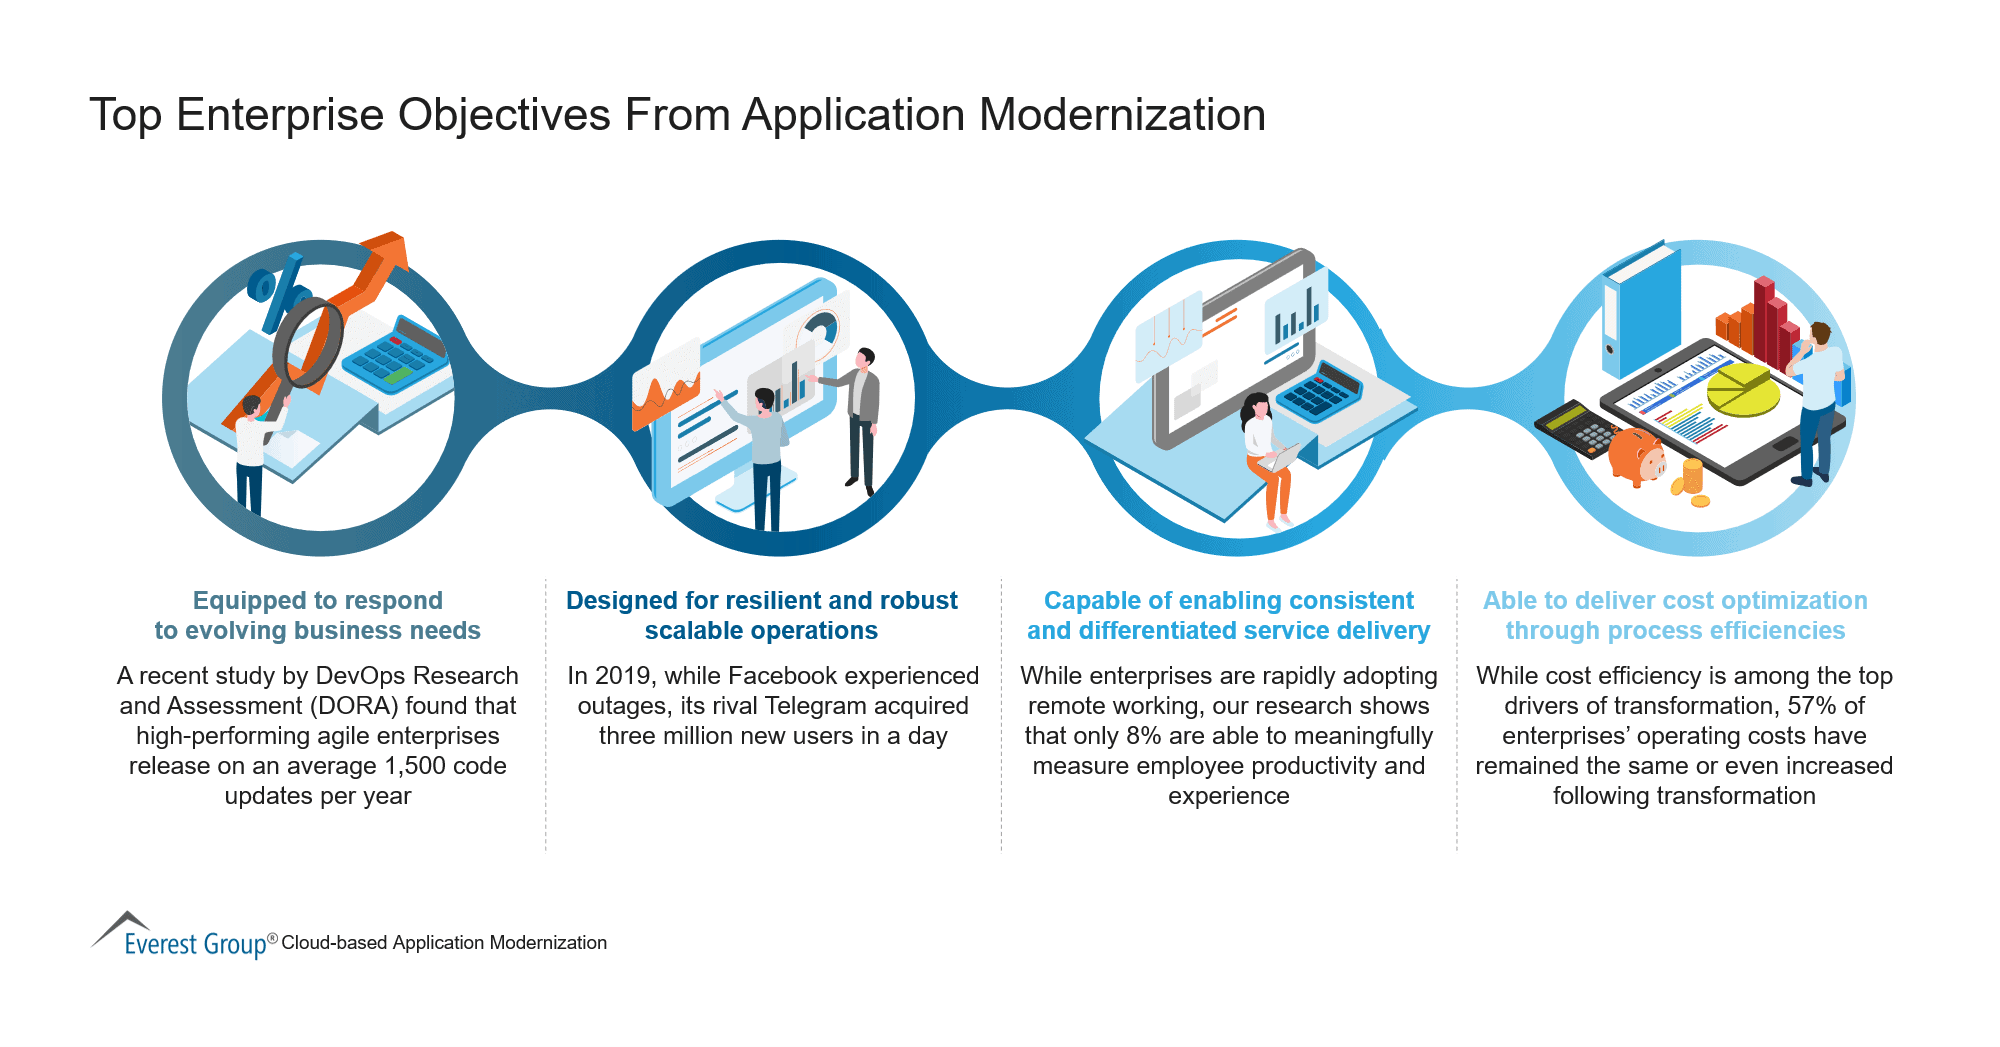 Top Enterprise Objectives From Application Modernization